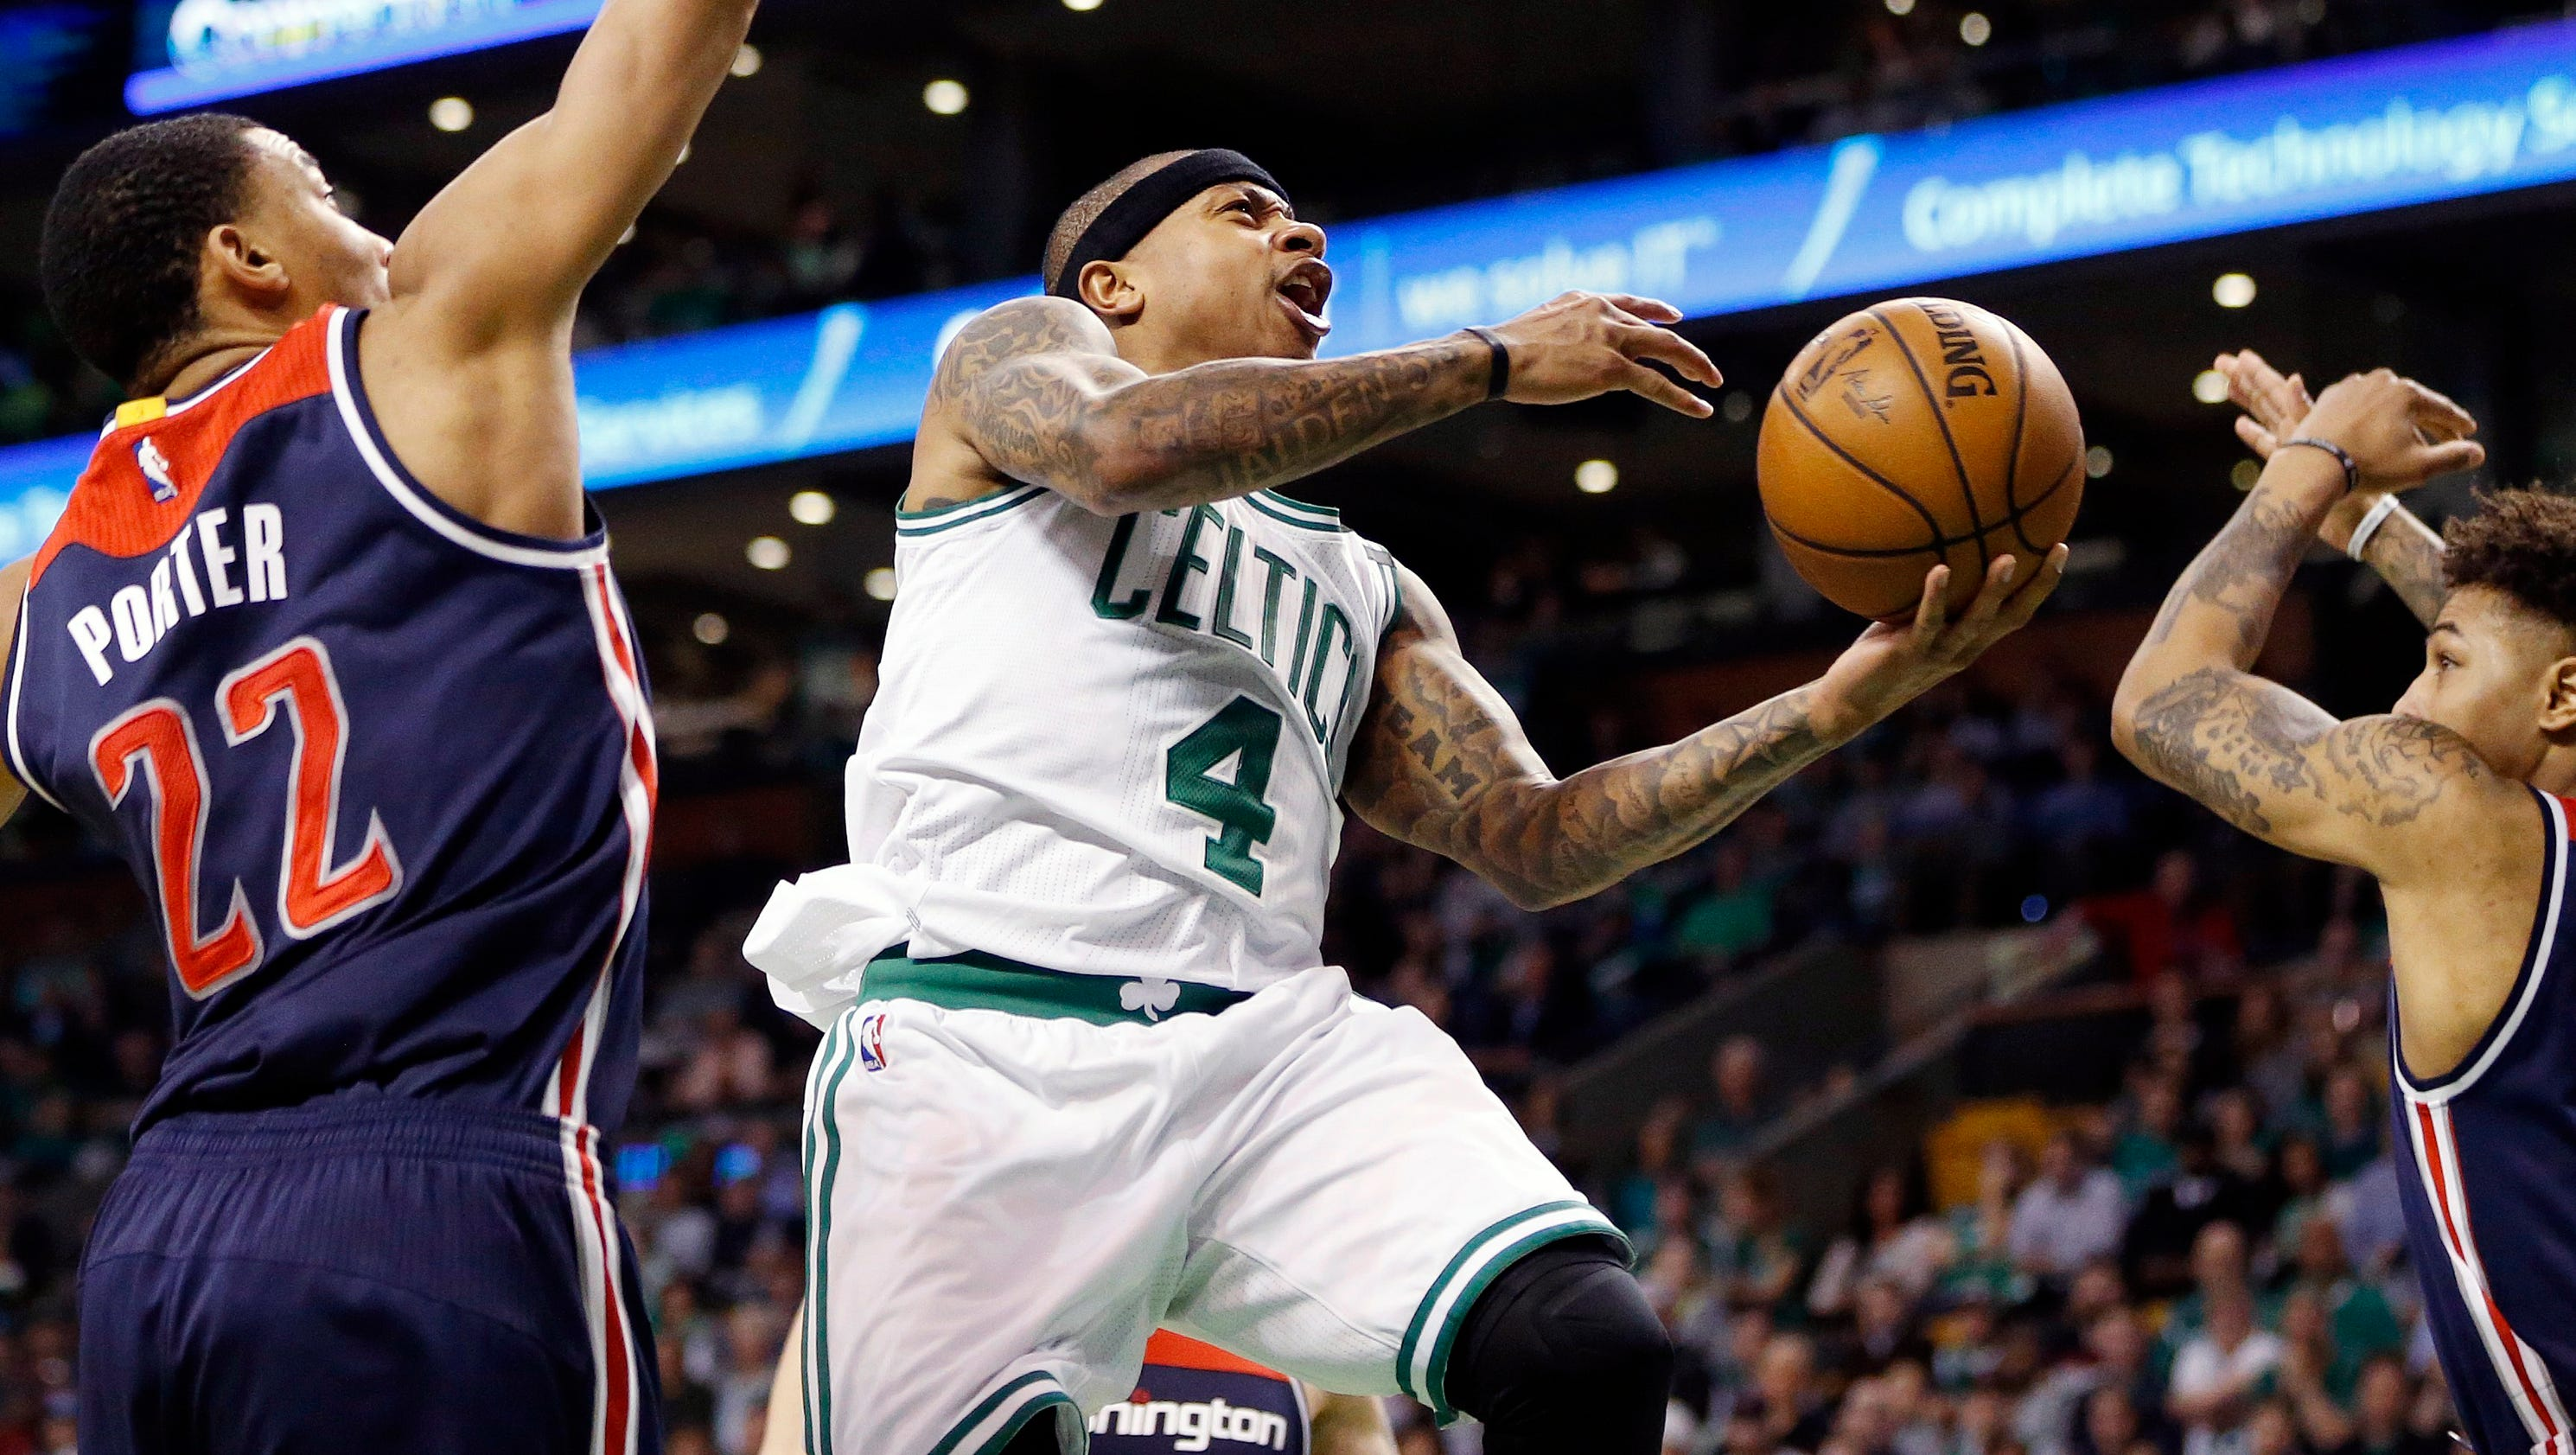 She would have been 23. Isaiah Thomas spent four or five hours in the  dentist s chair having work done on the tooth that was knocked out in Game  1 6893bea1c